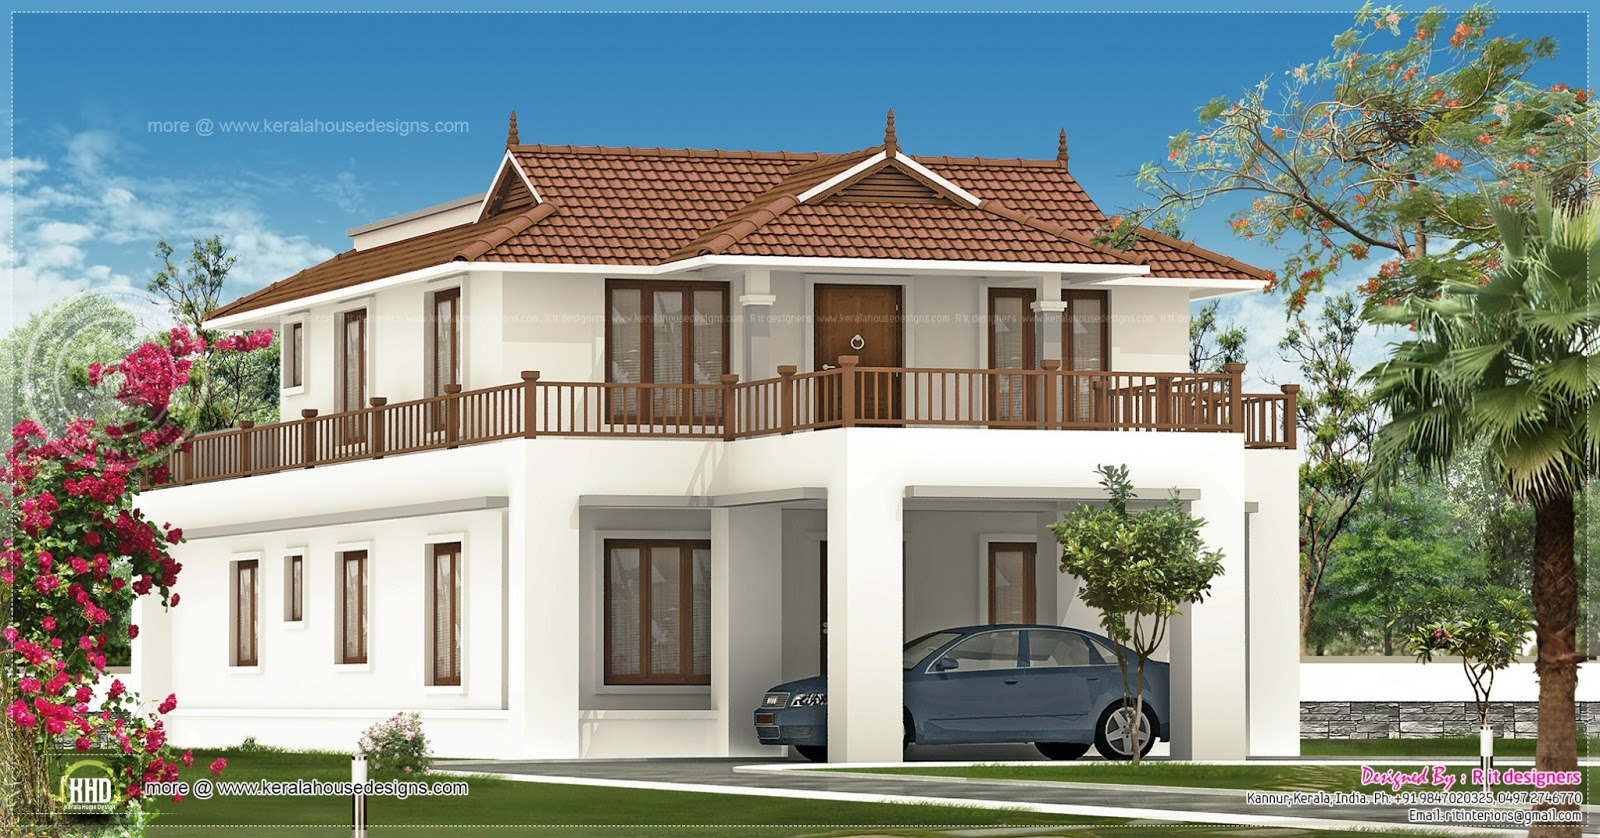 2820 square feet house exterior design home kerala plans for One floor house exterior design